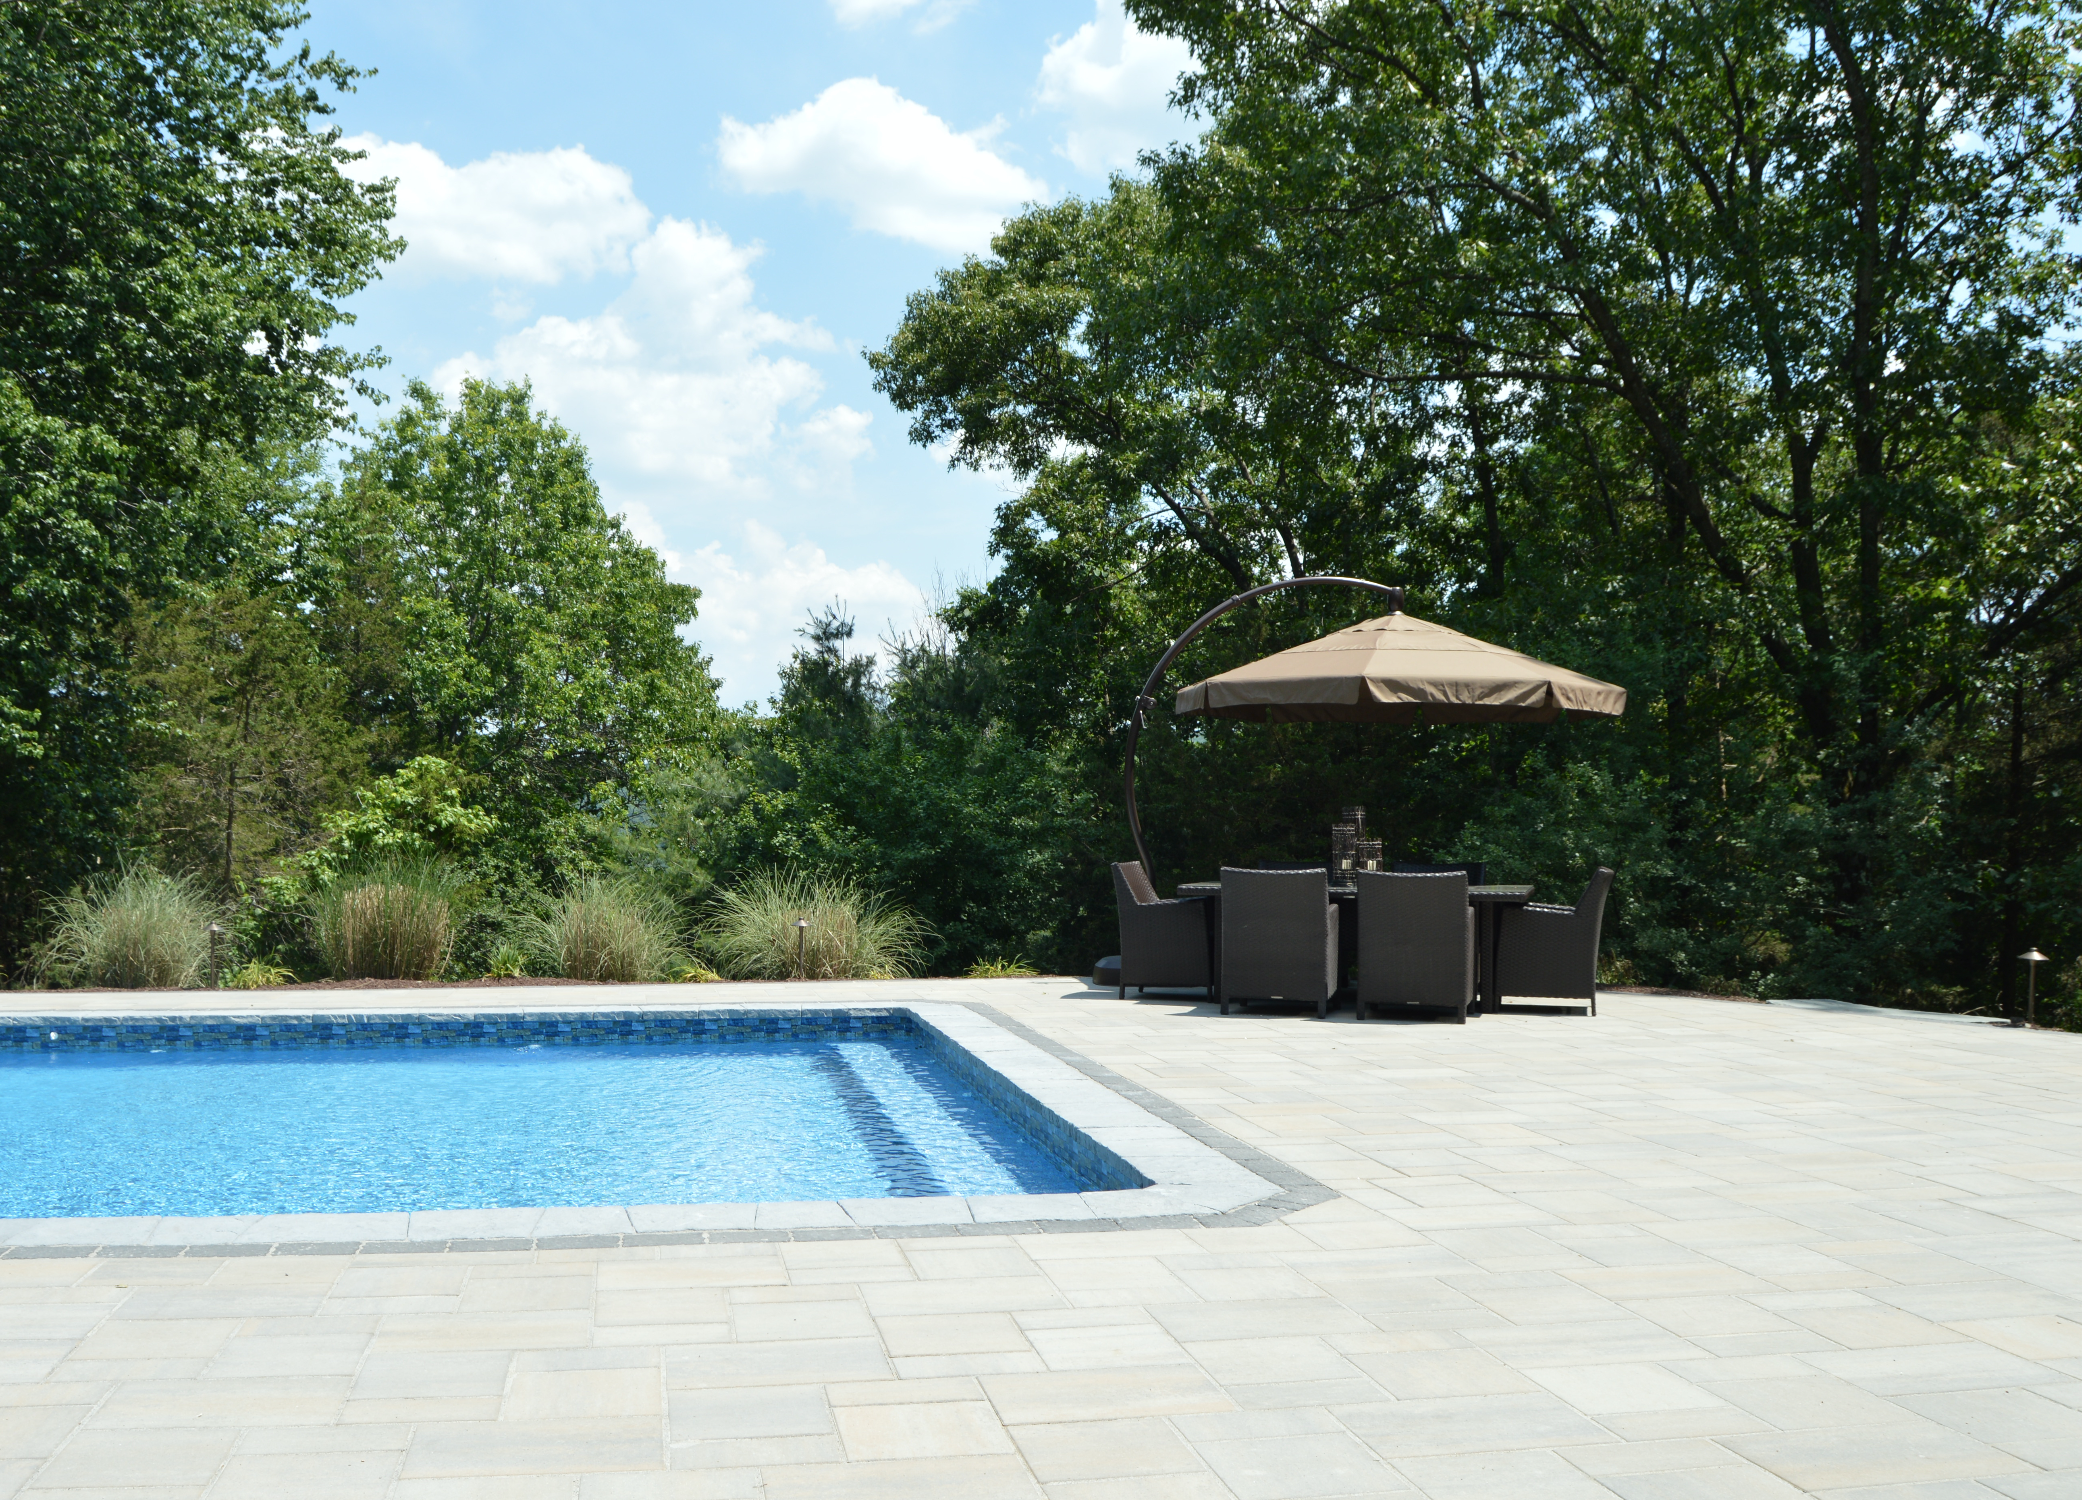 Sugarloaf, NY Swimming pool patio with pavers